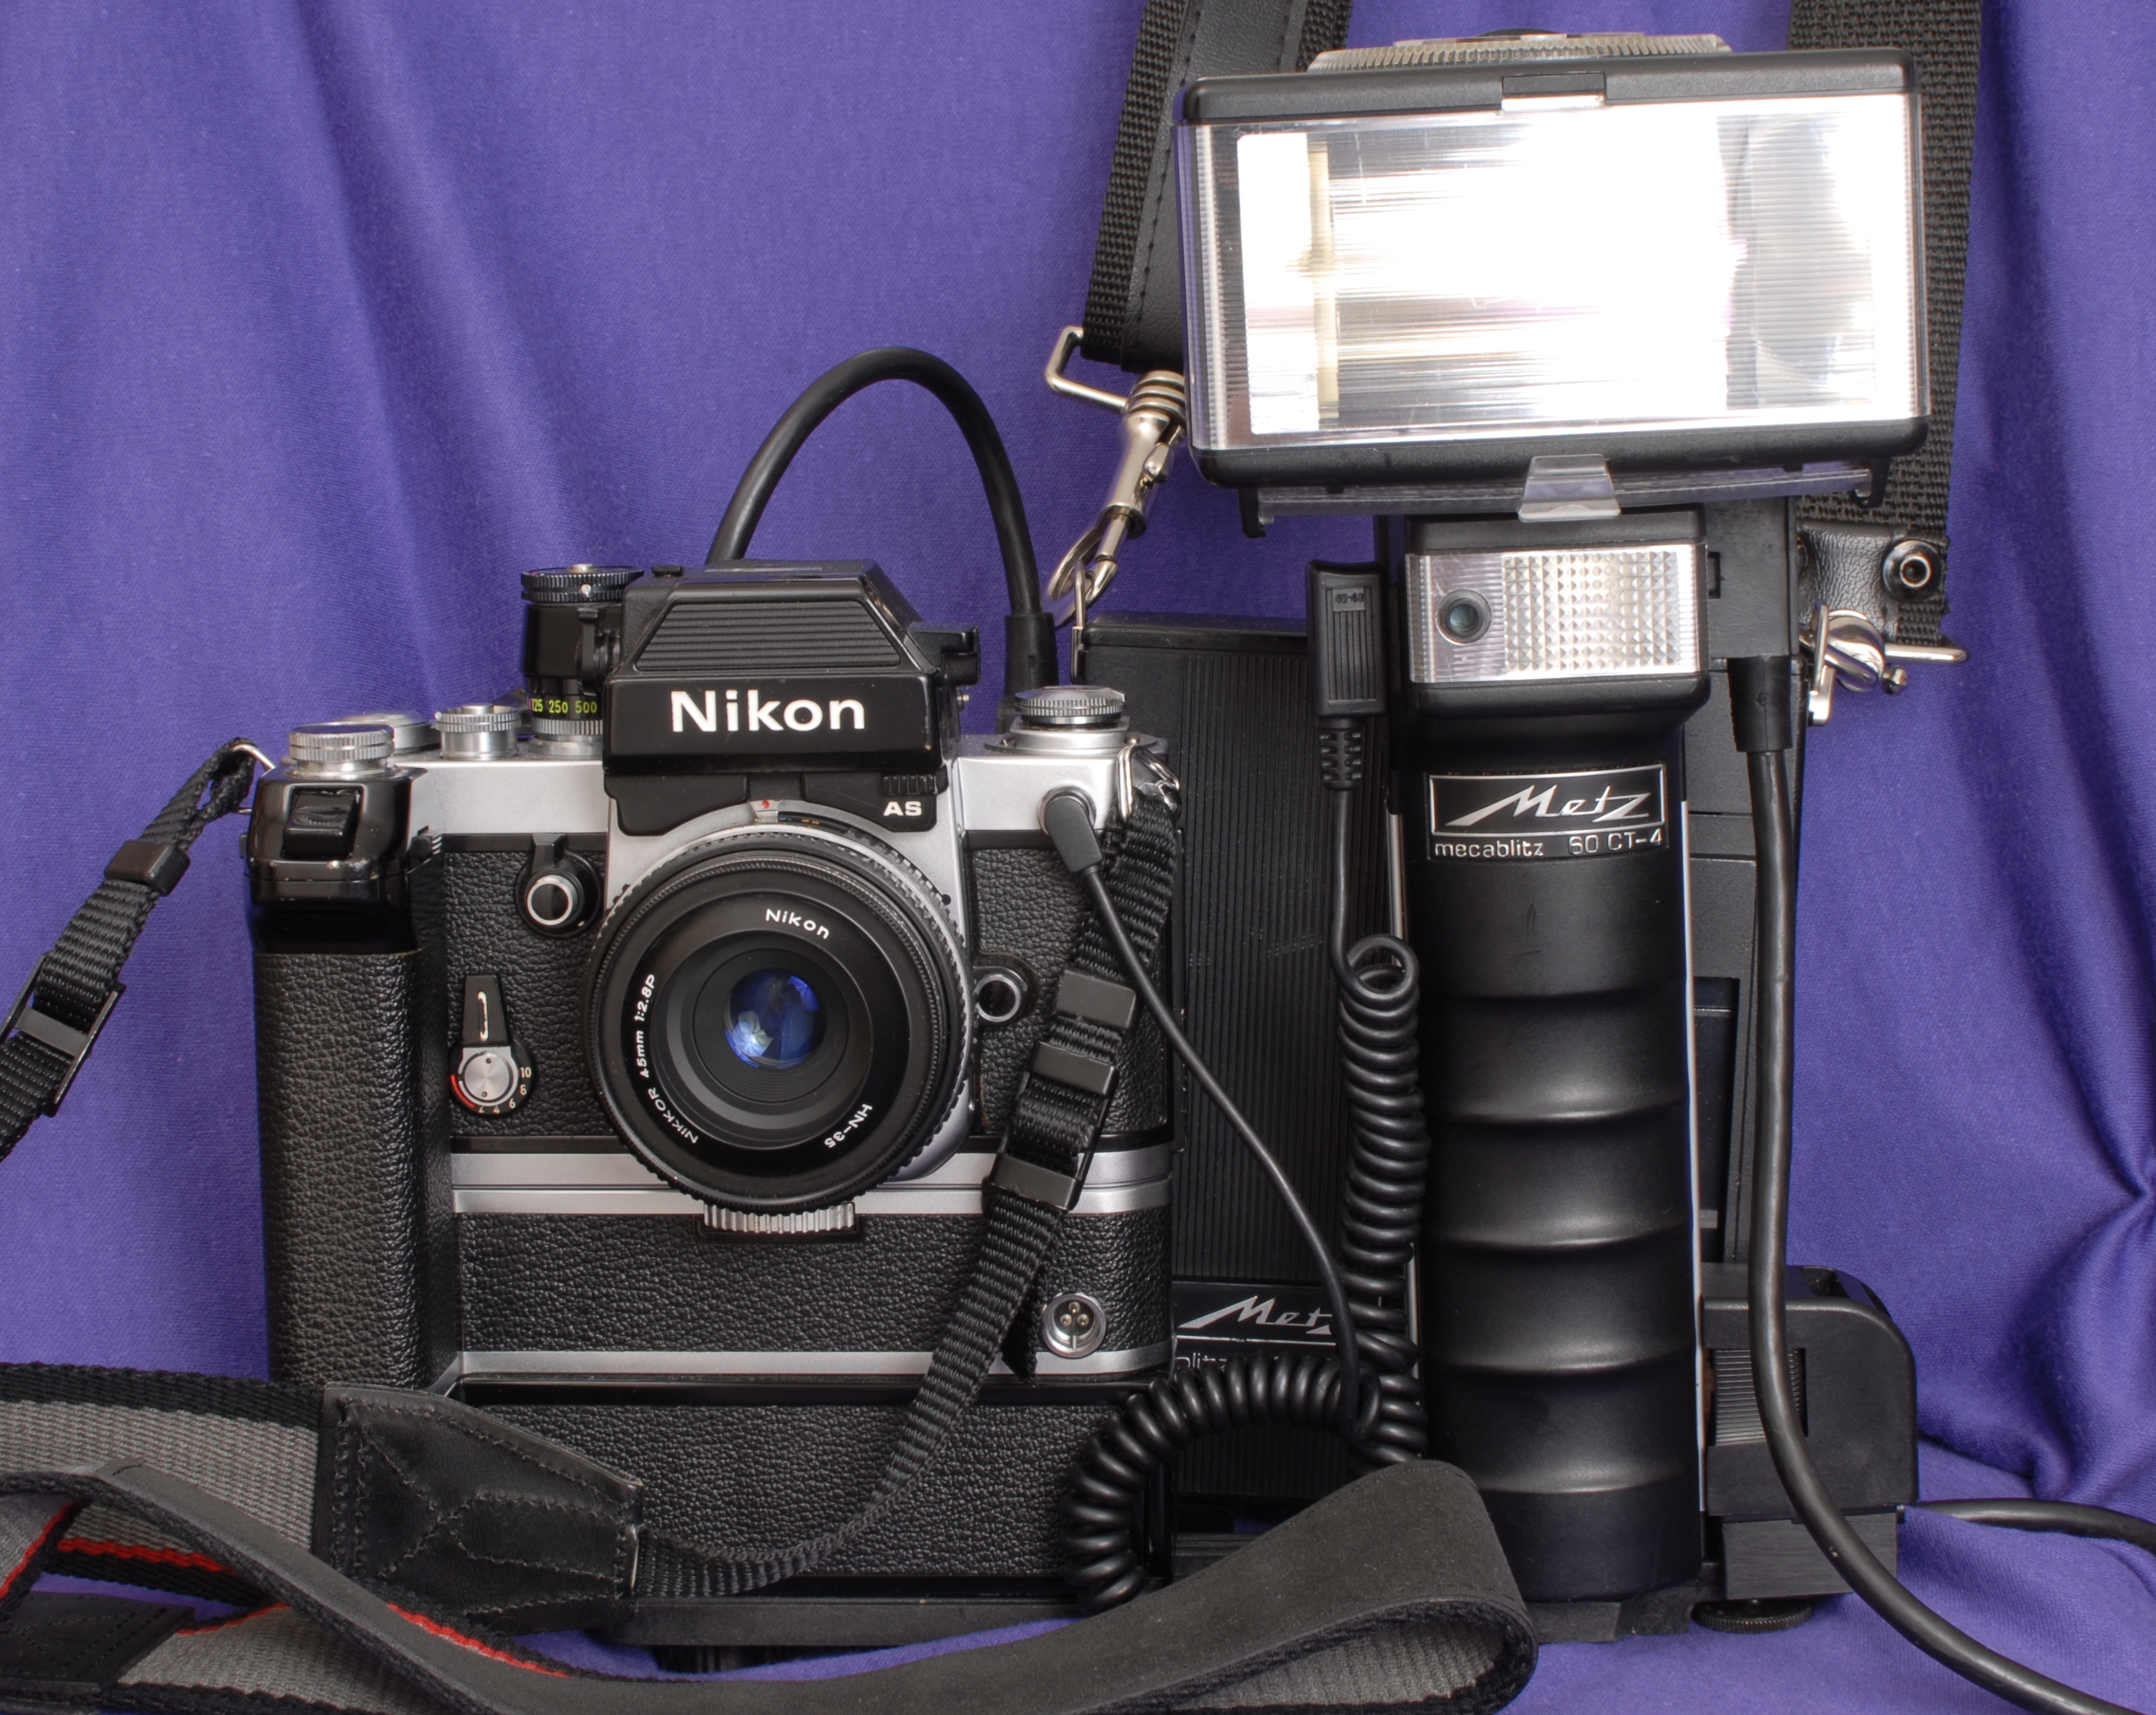 Nikon F2 Ttl Flash Photography Forums Camera Circuit Further Disposable Bpl0282 Btw The